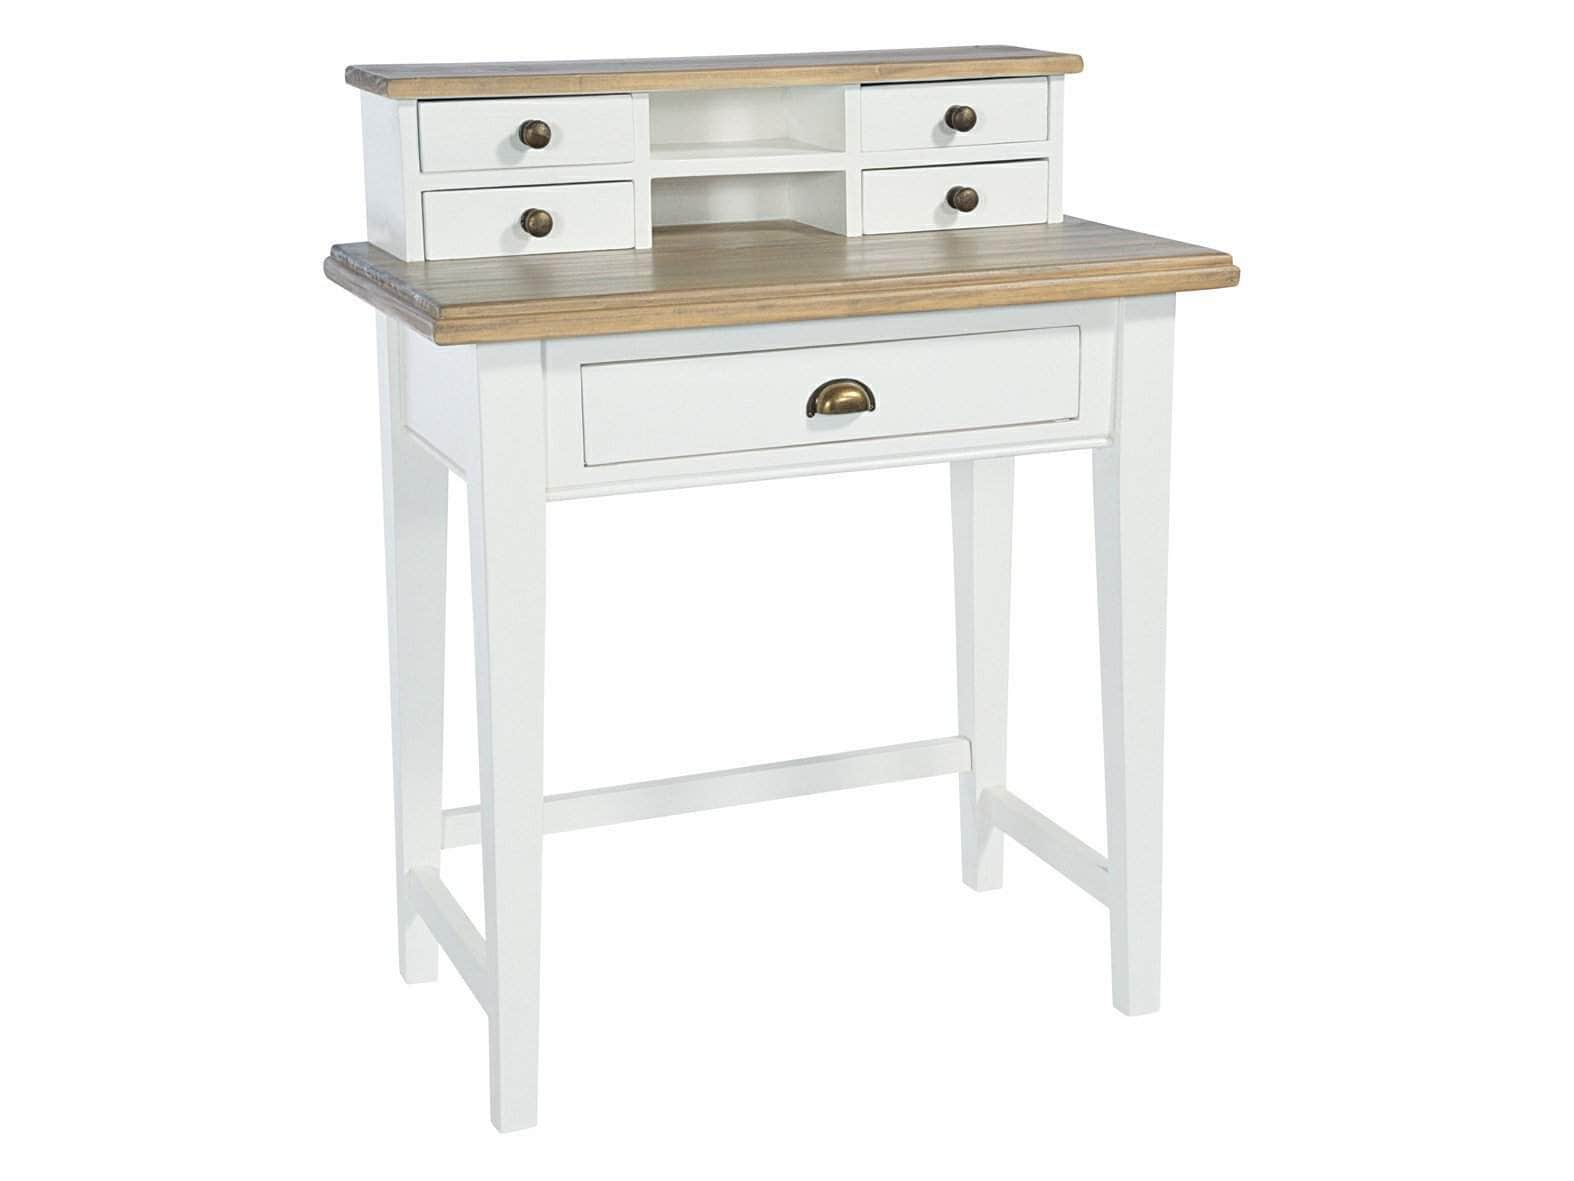 Traditional, white-painted writing desk with five drawers